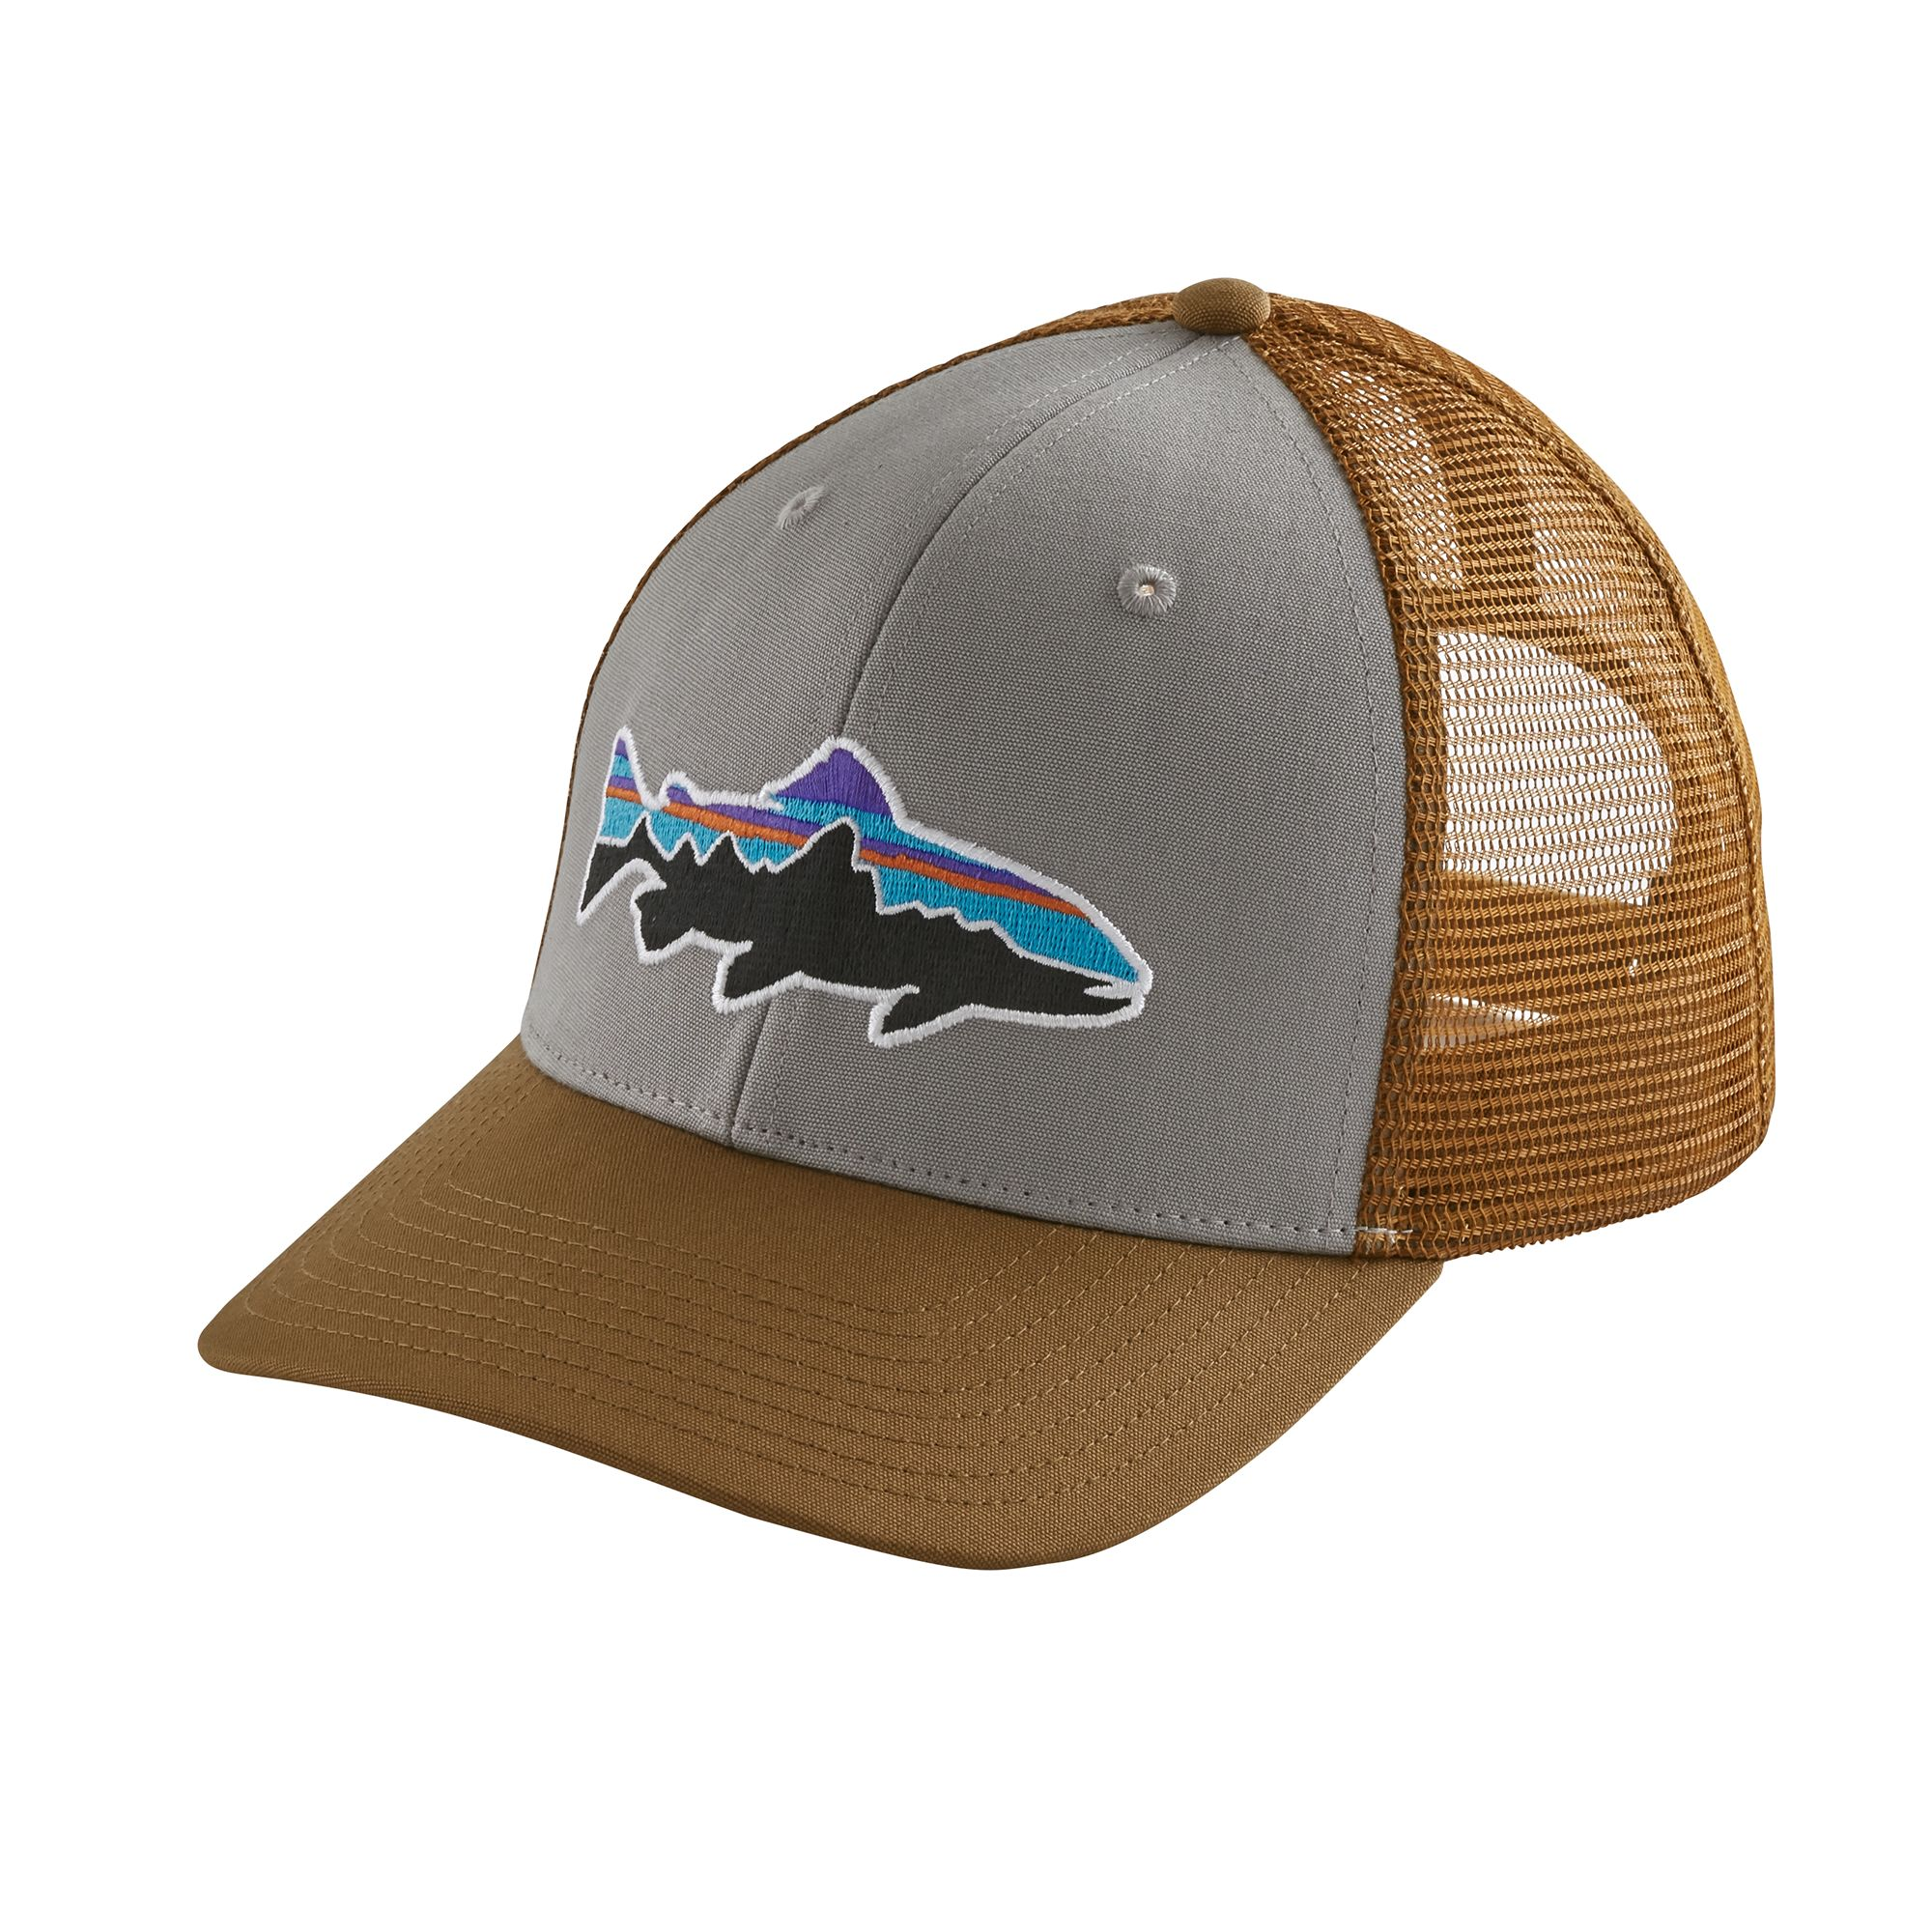 39297ac7 patagonia fitz roy hat - Bay Shore Outfitters